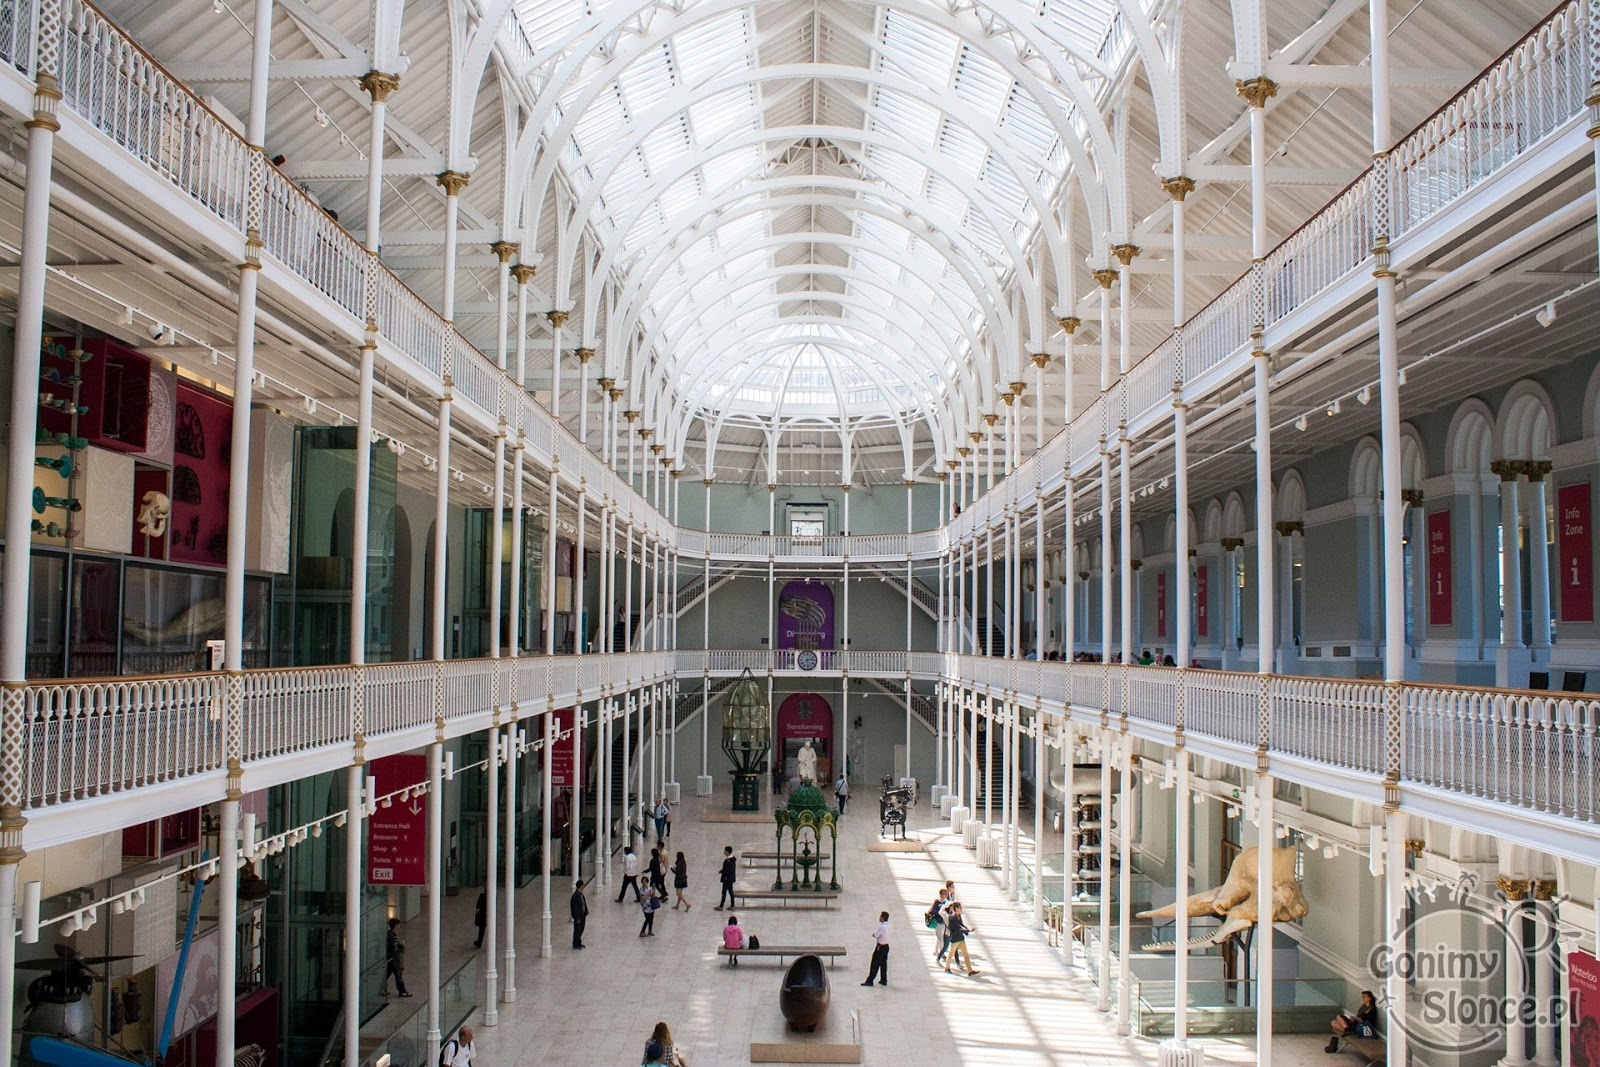 National Museum of Scotland, Edynburg